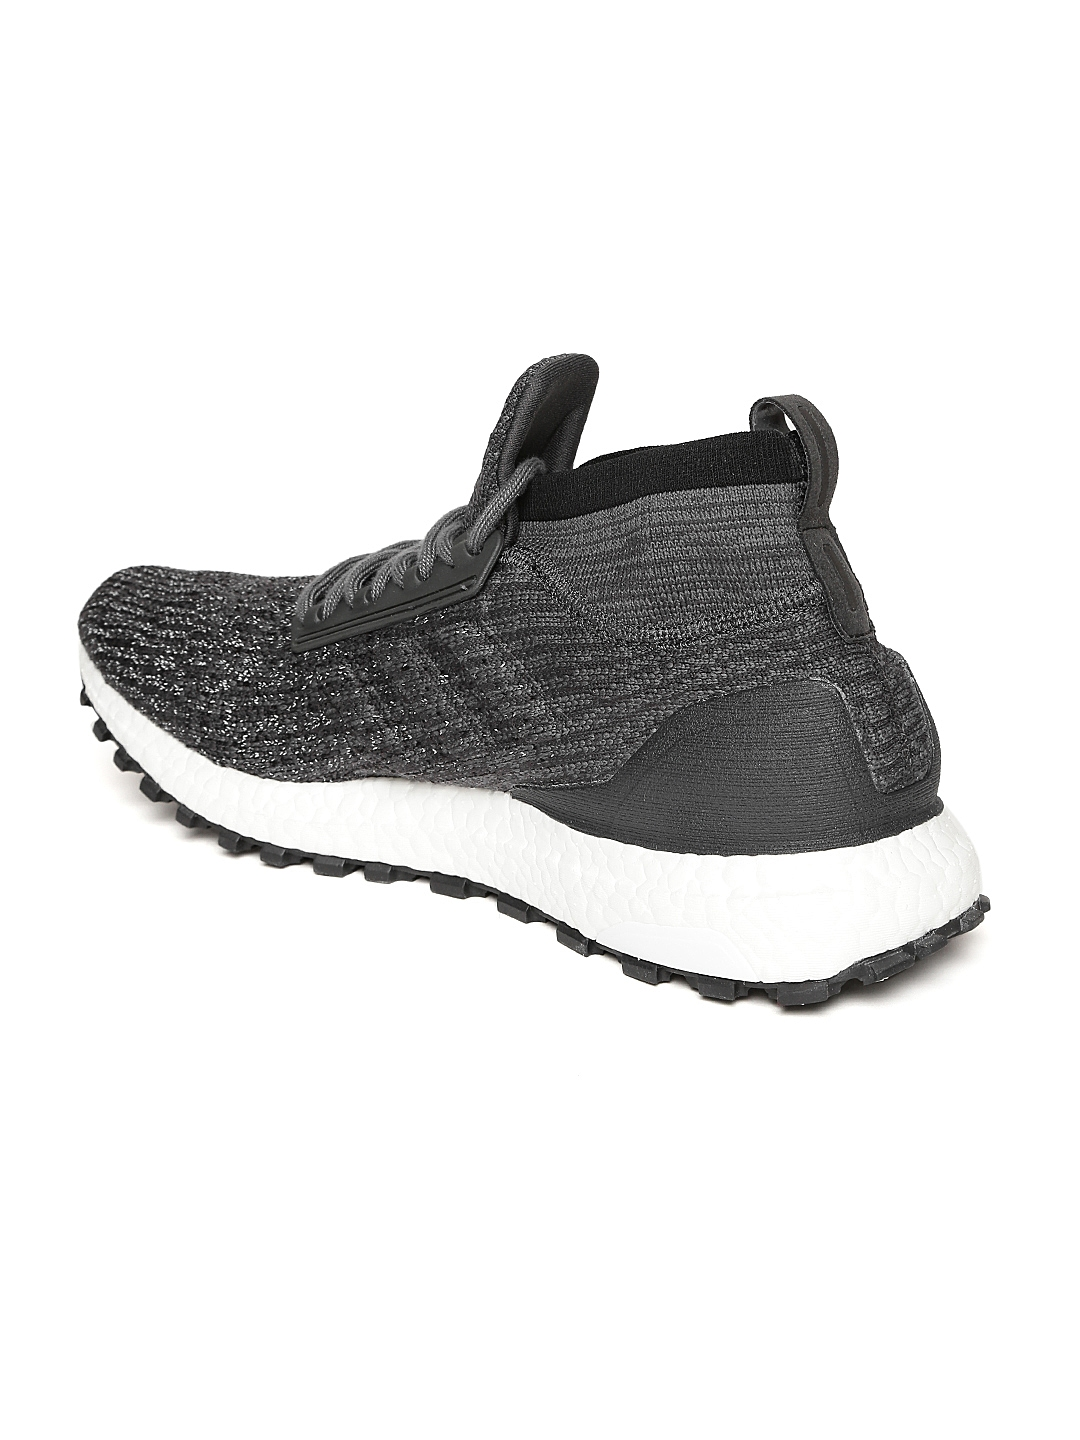 3ae09a414cf88 Buy ADIDAS Men Charcoal Grey Ultraboost All Terrain Ltd Running ...